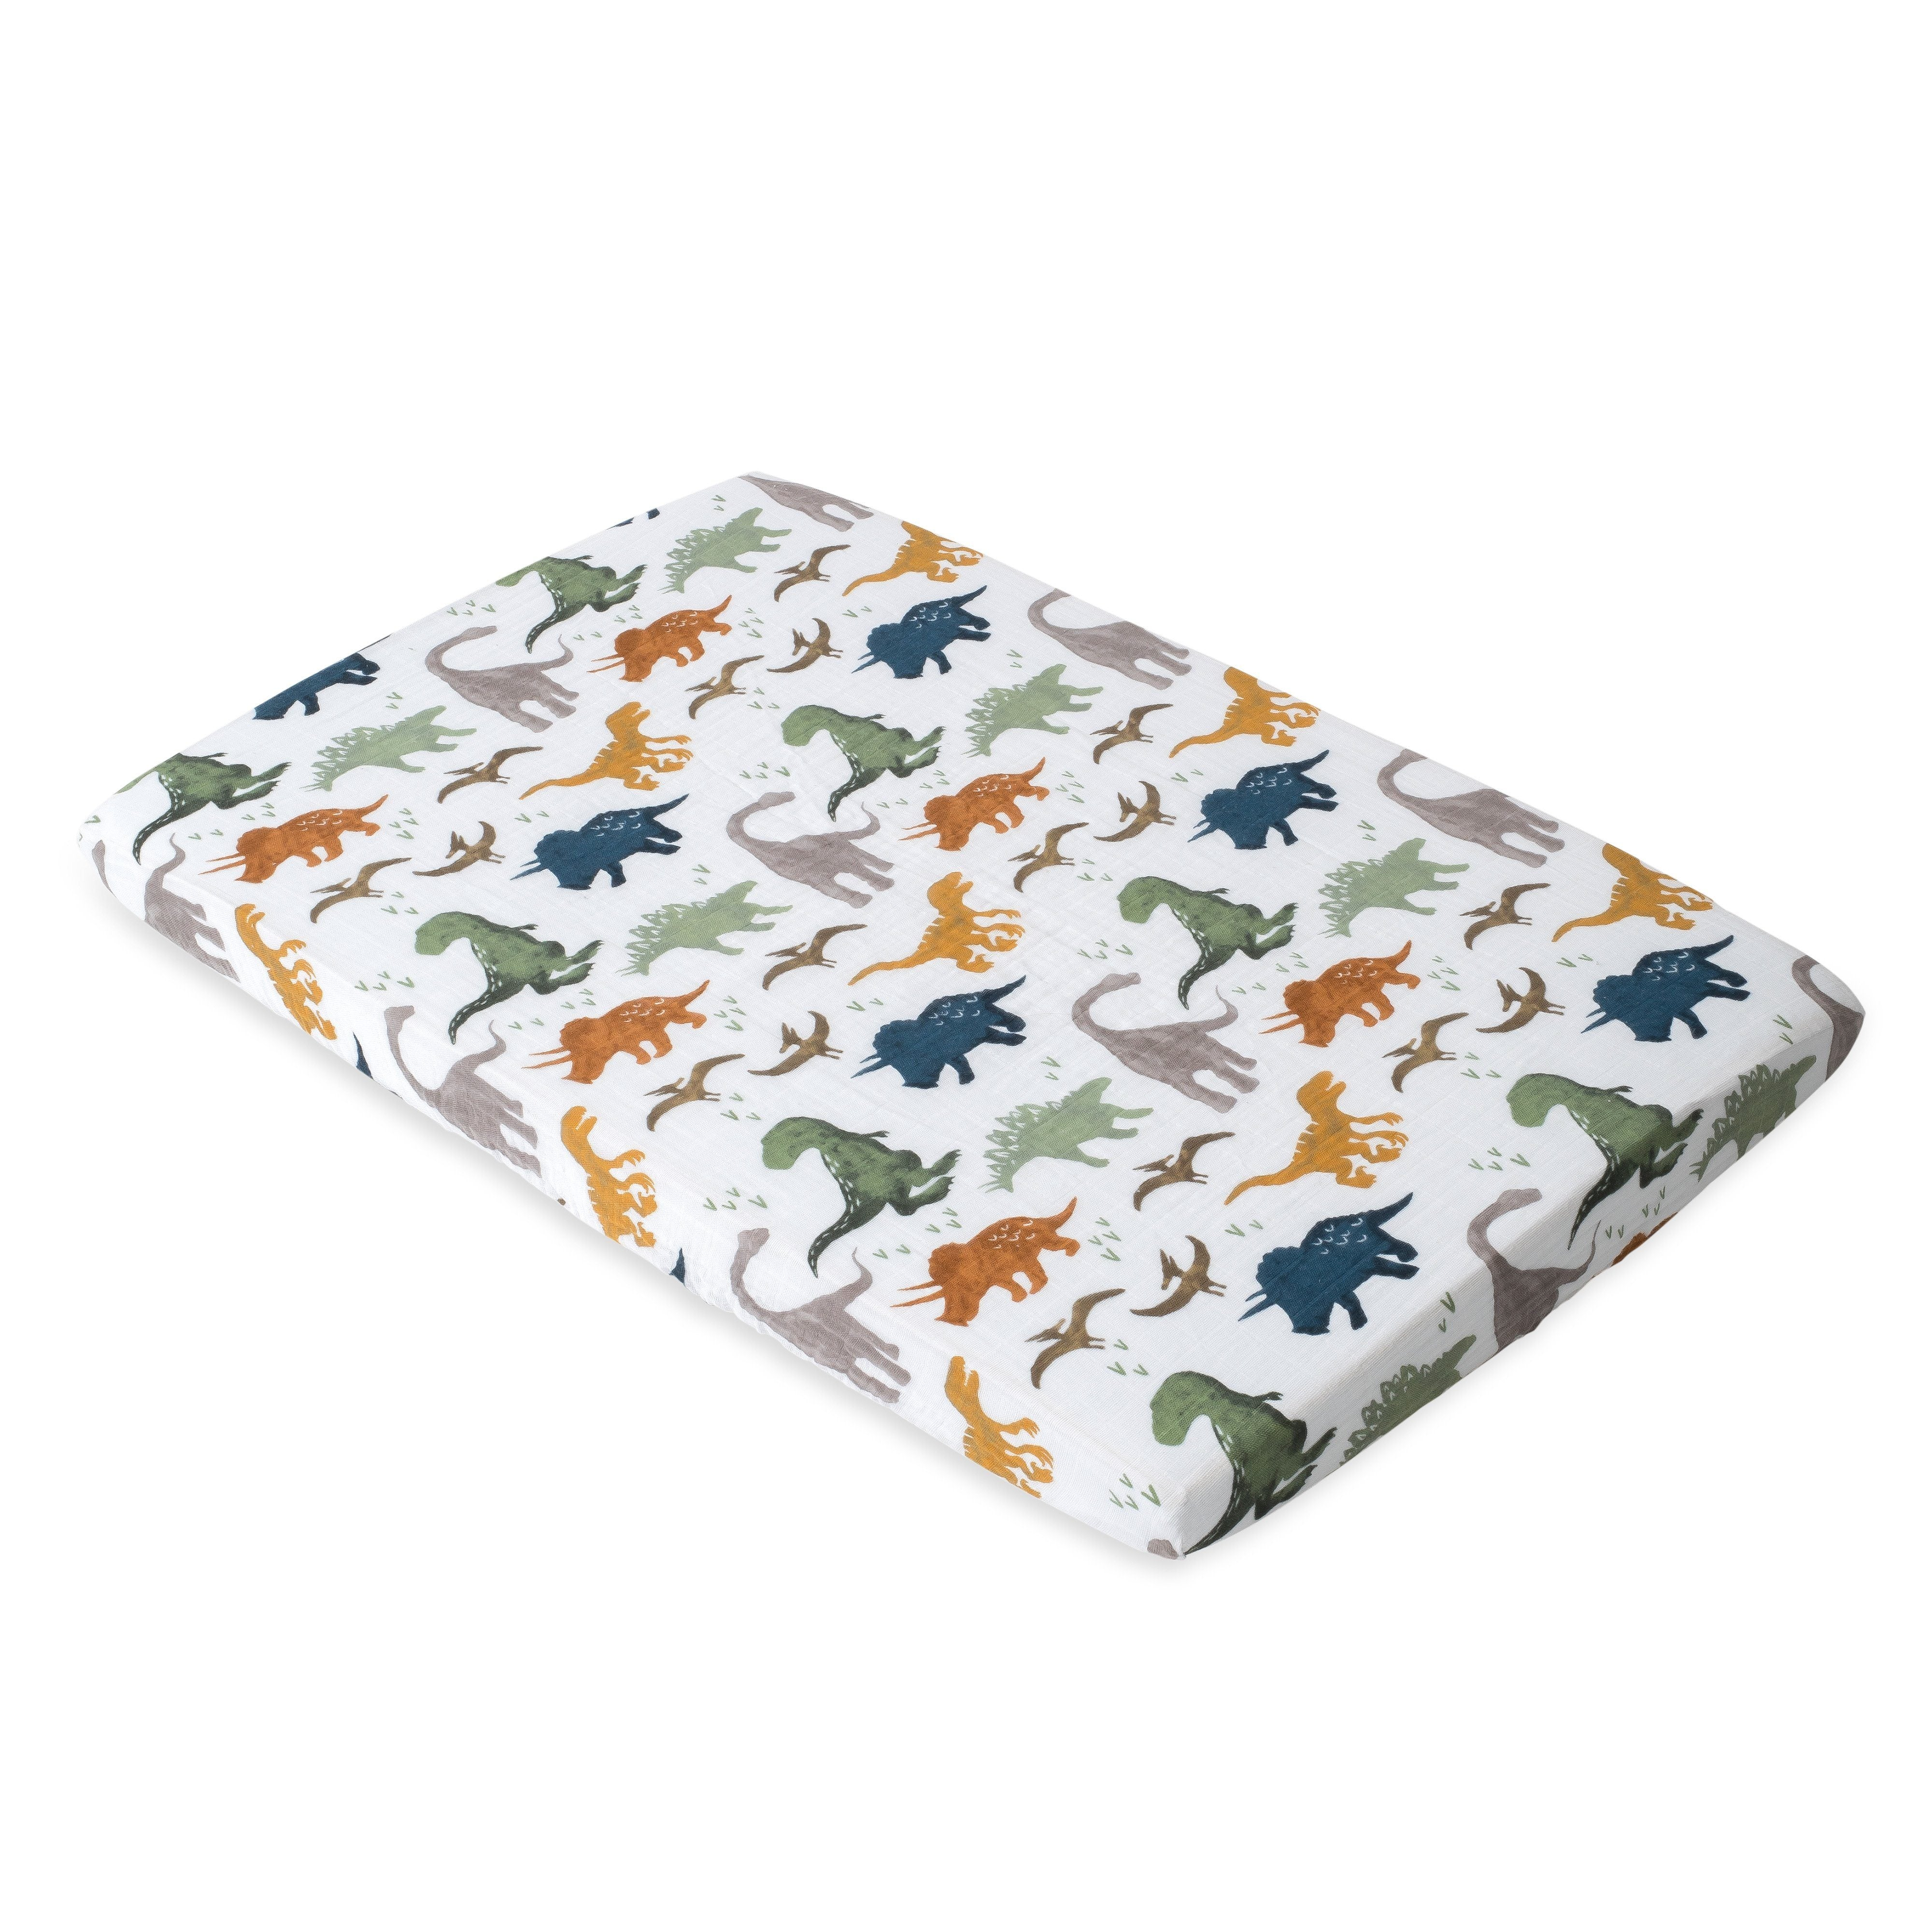 Dino Friends Cotton Muslin Mini Crib Sheet - Project Nursery